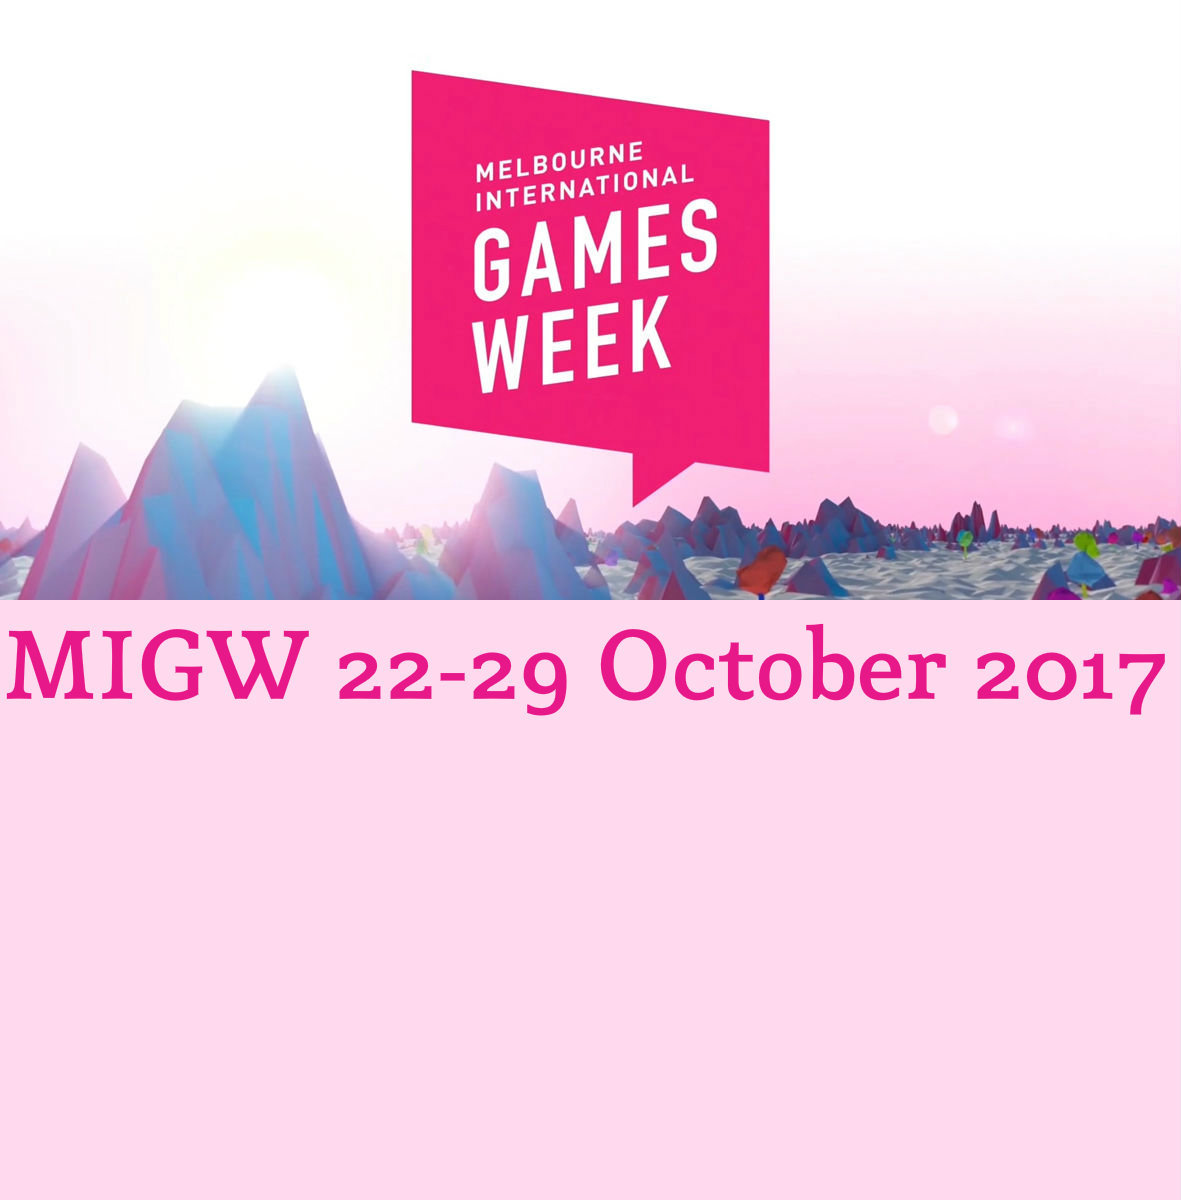 Games Week Melbourne